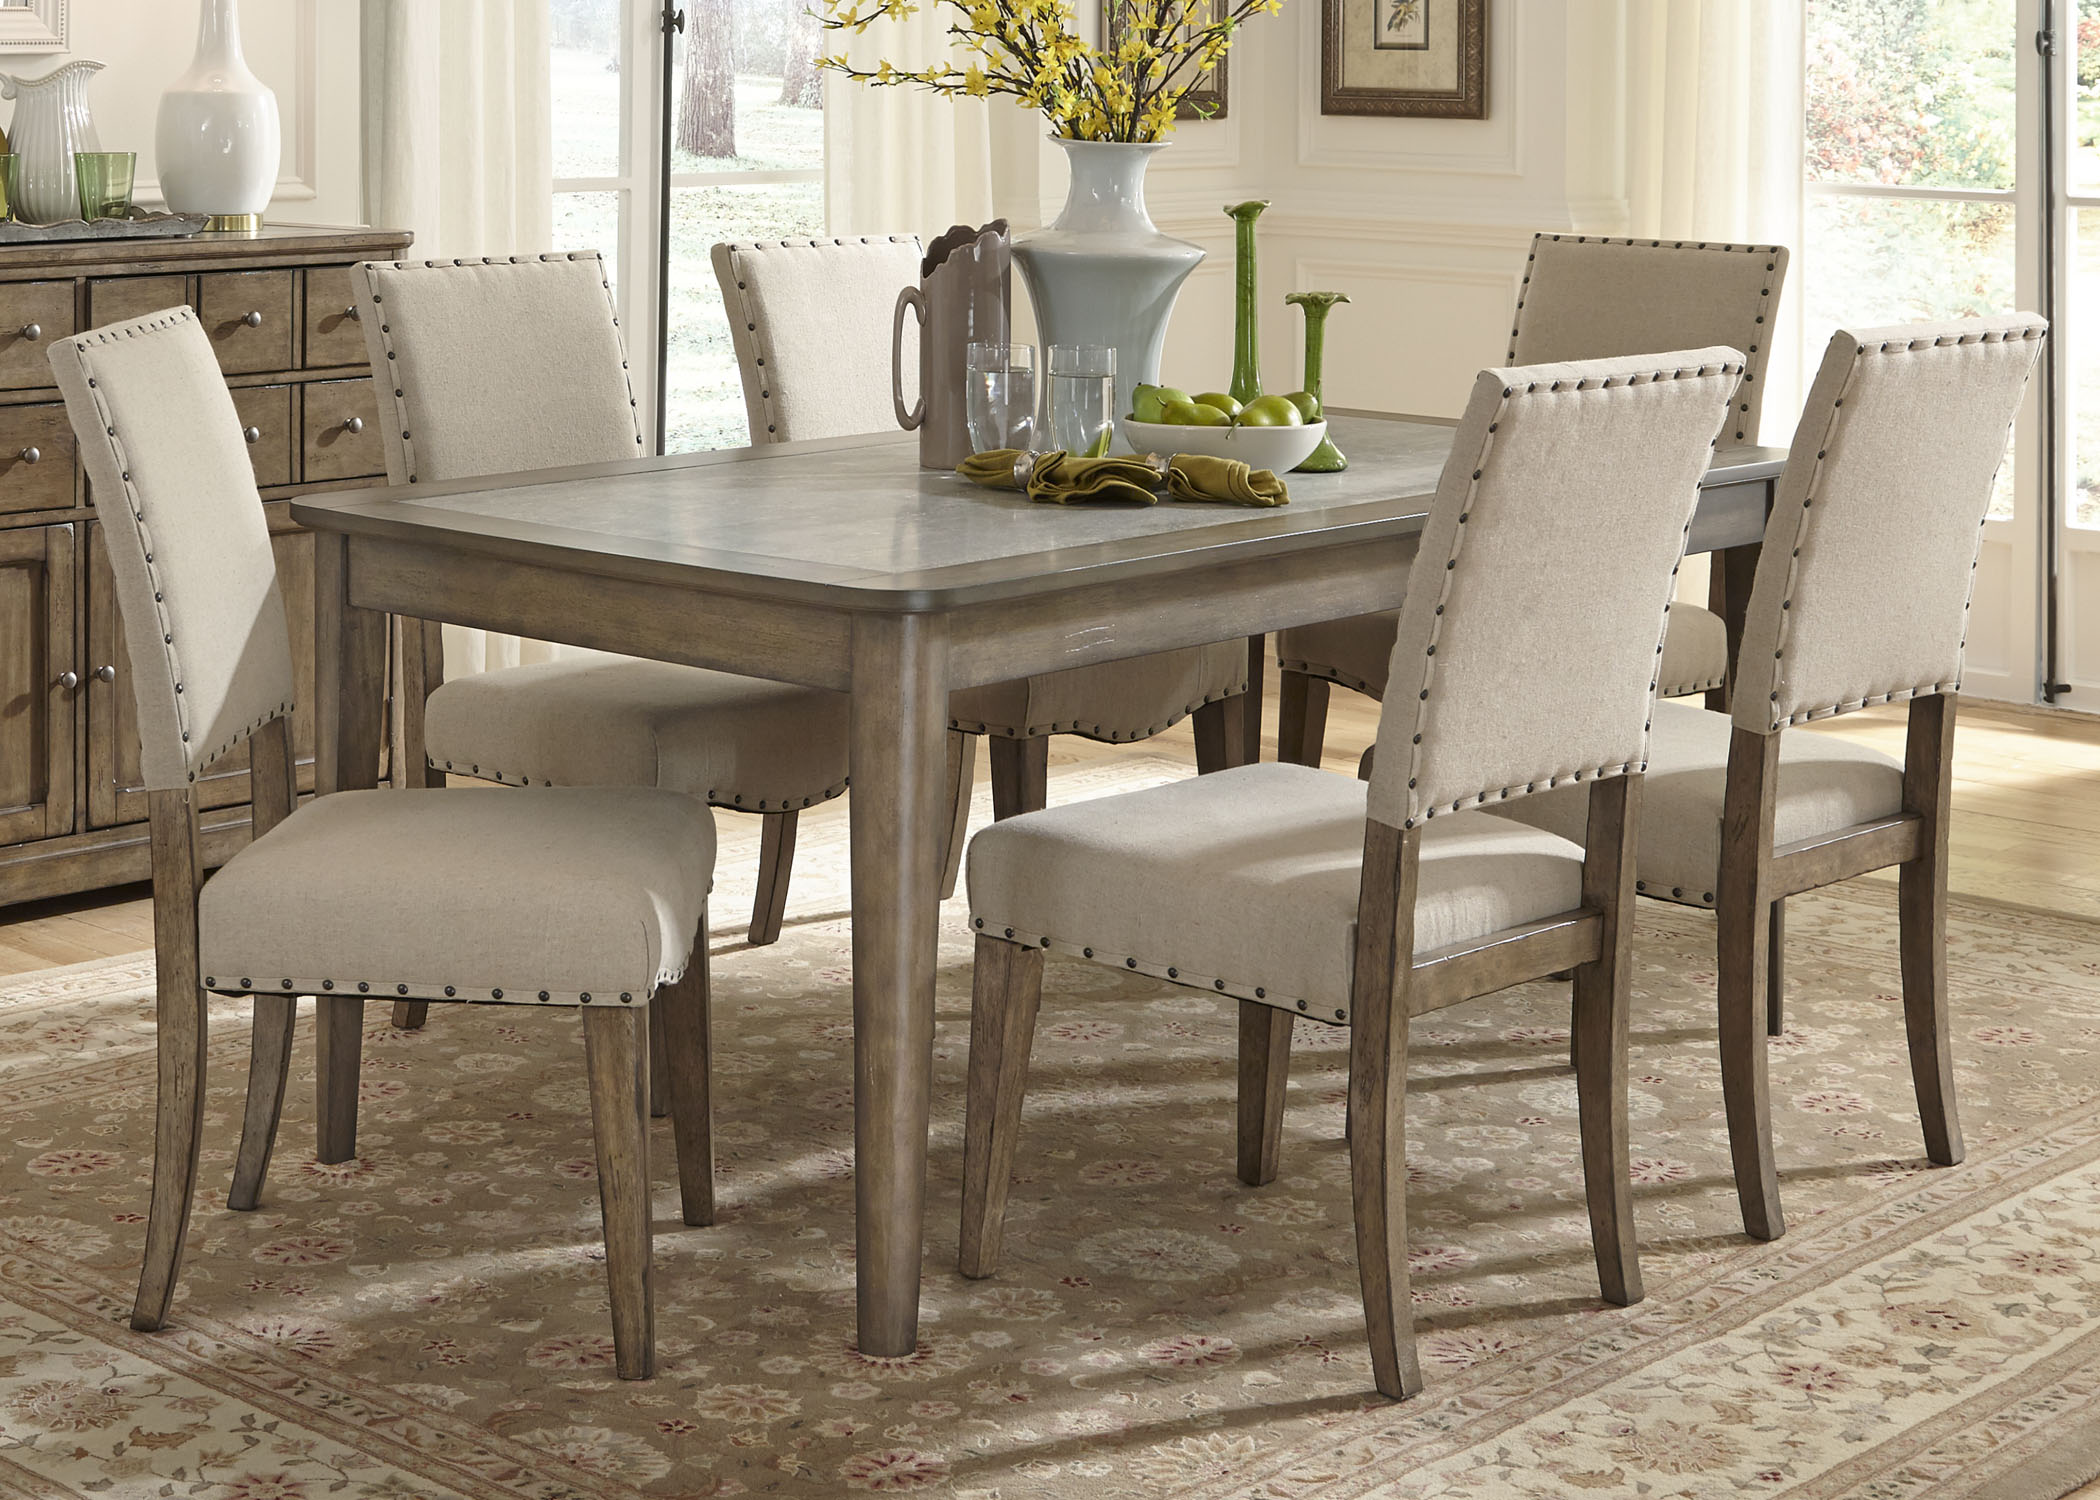 rectangular leg dining set in weathered gray by dining rooms outlet